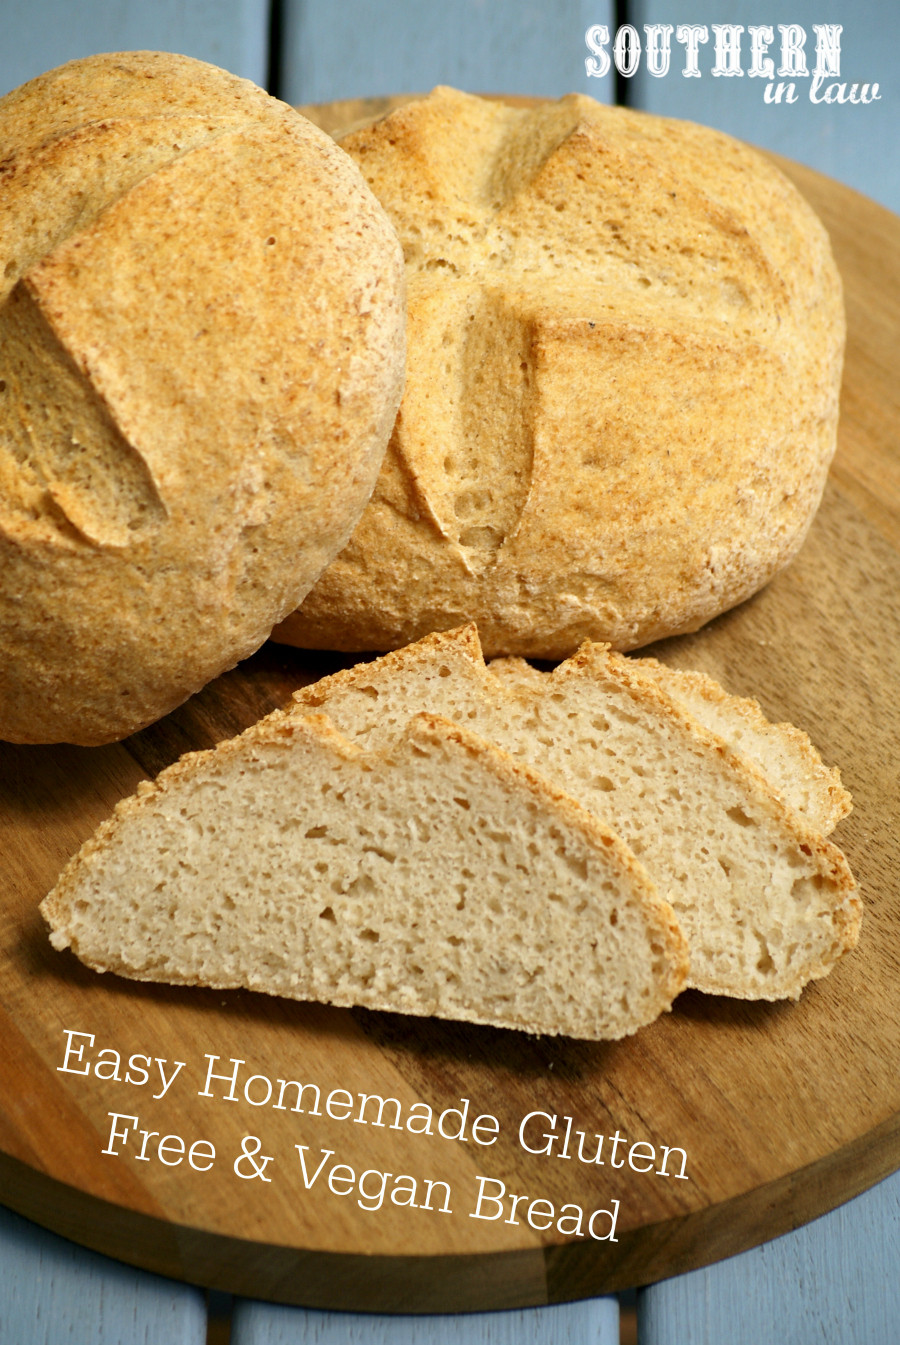 Vegan Gluten Free Bread  Southern In Law Recipe Easy Homemade Gluten Free and